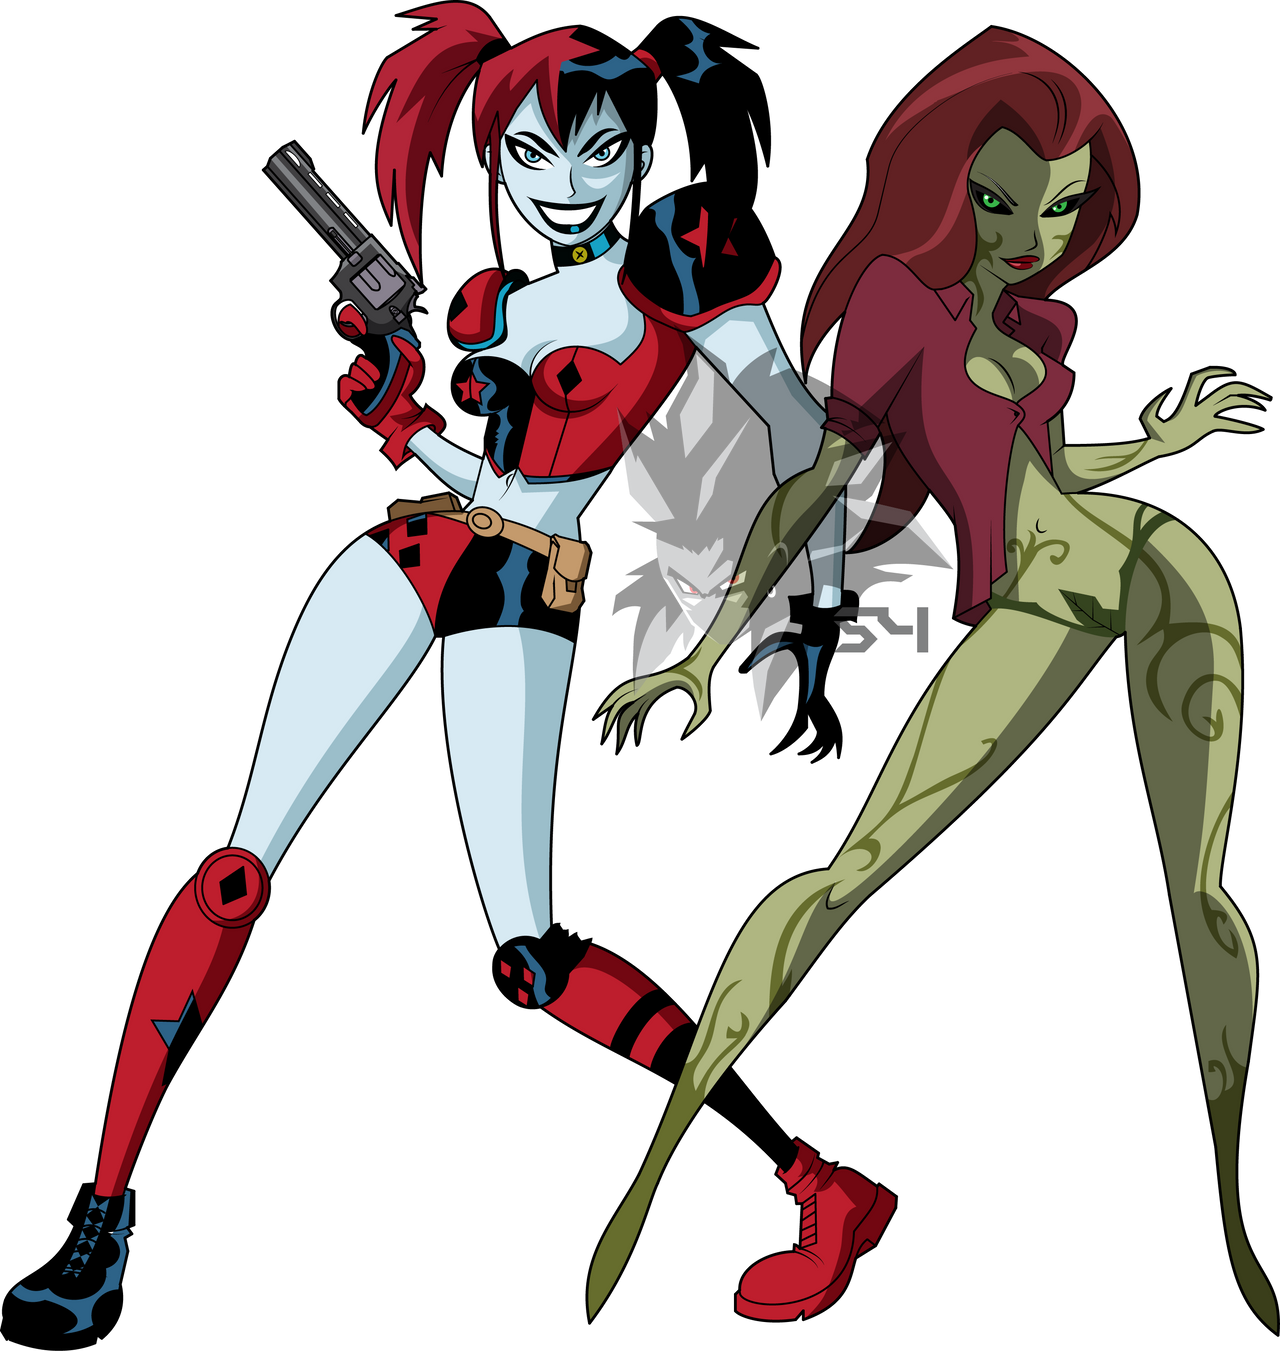 harley quinn and poison ivy bruce timm style by mad 54